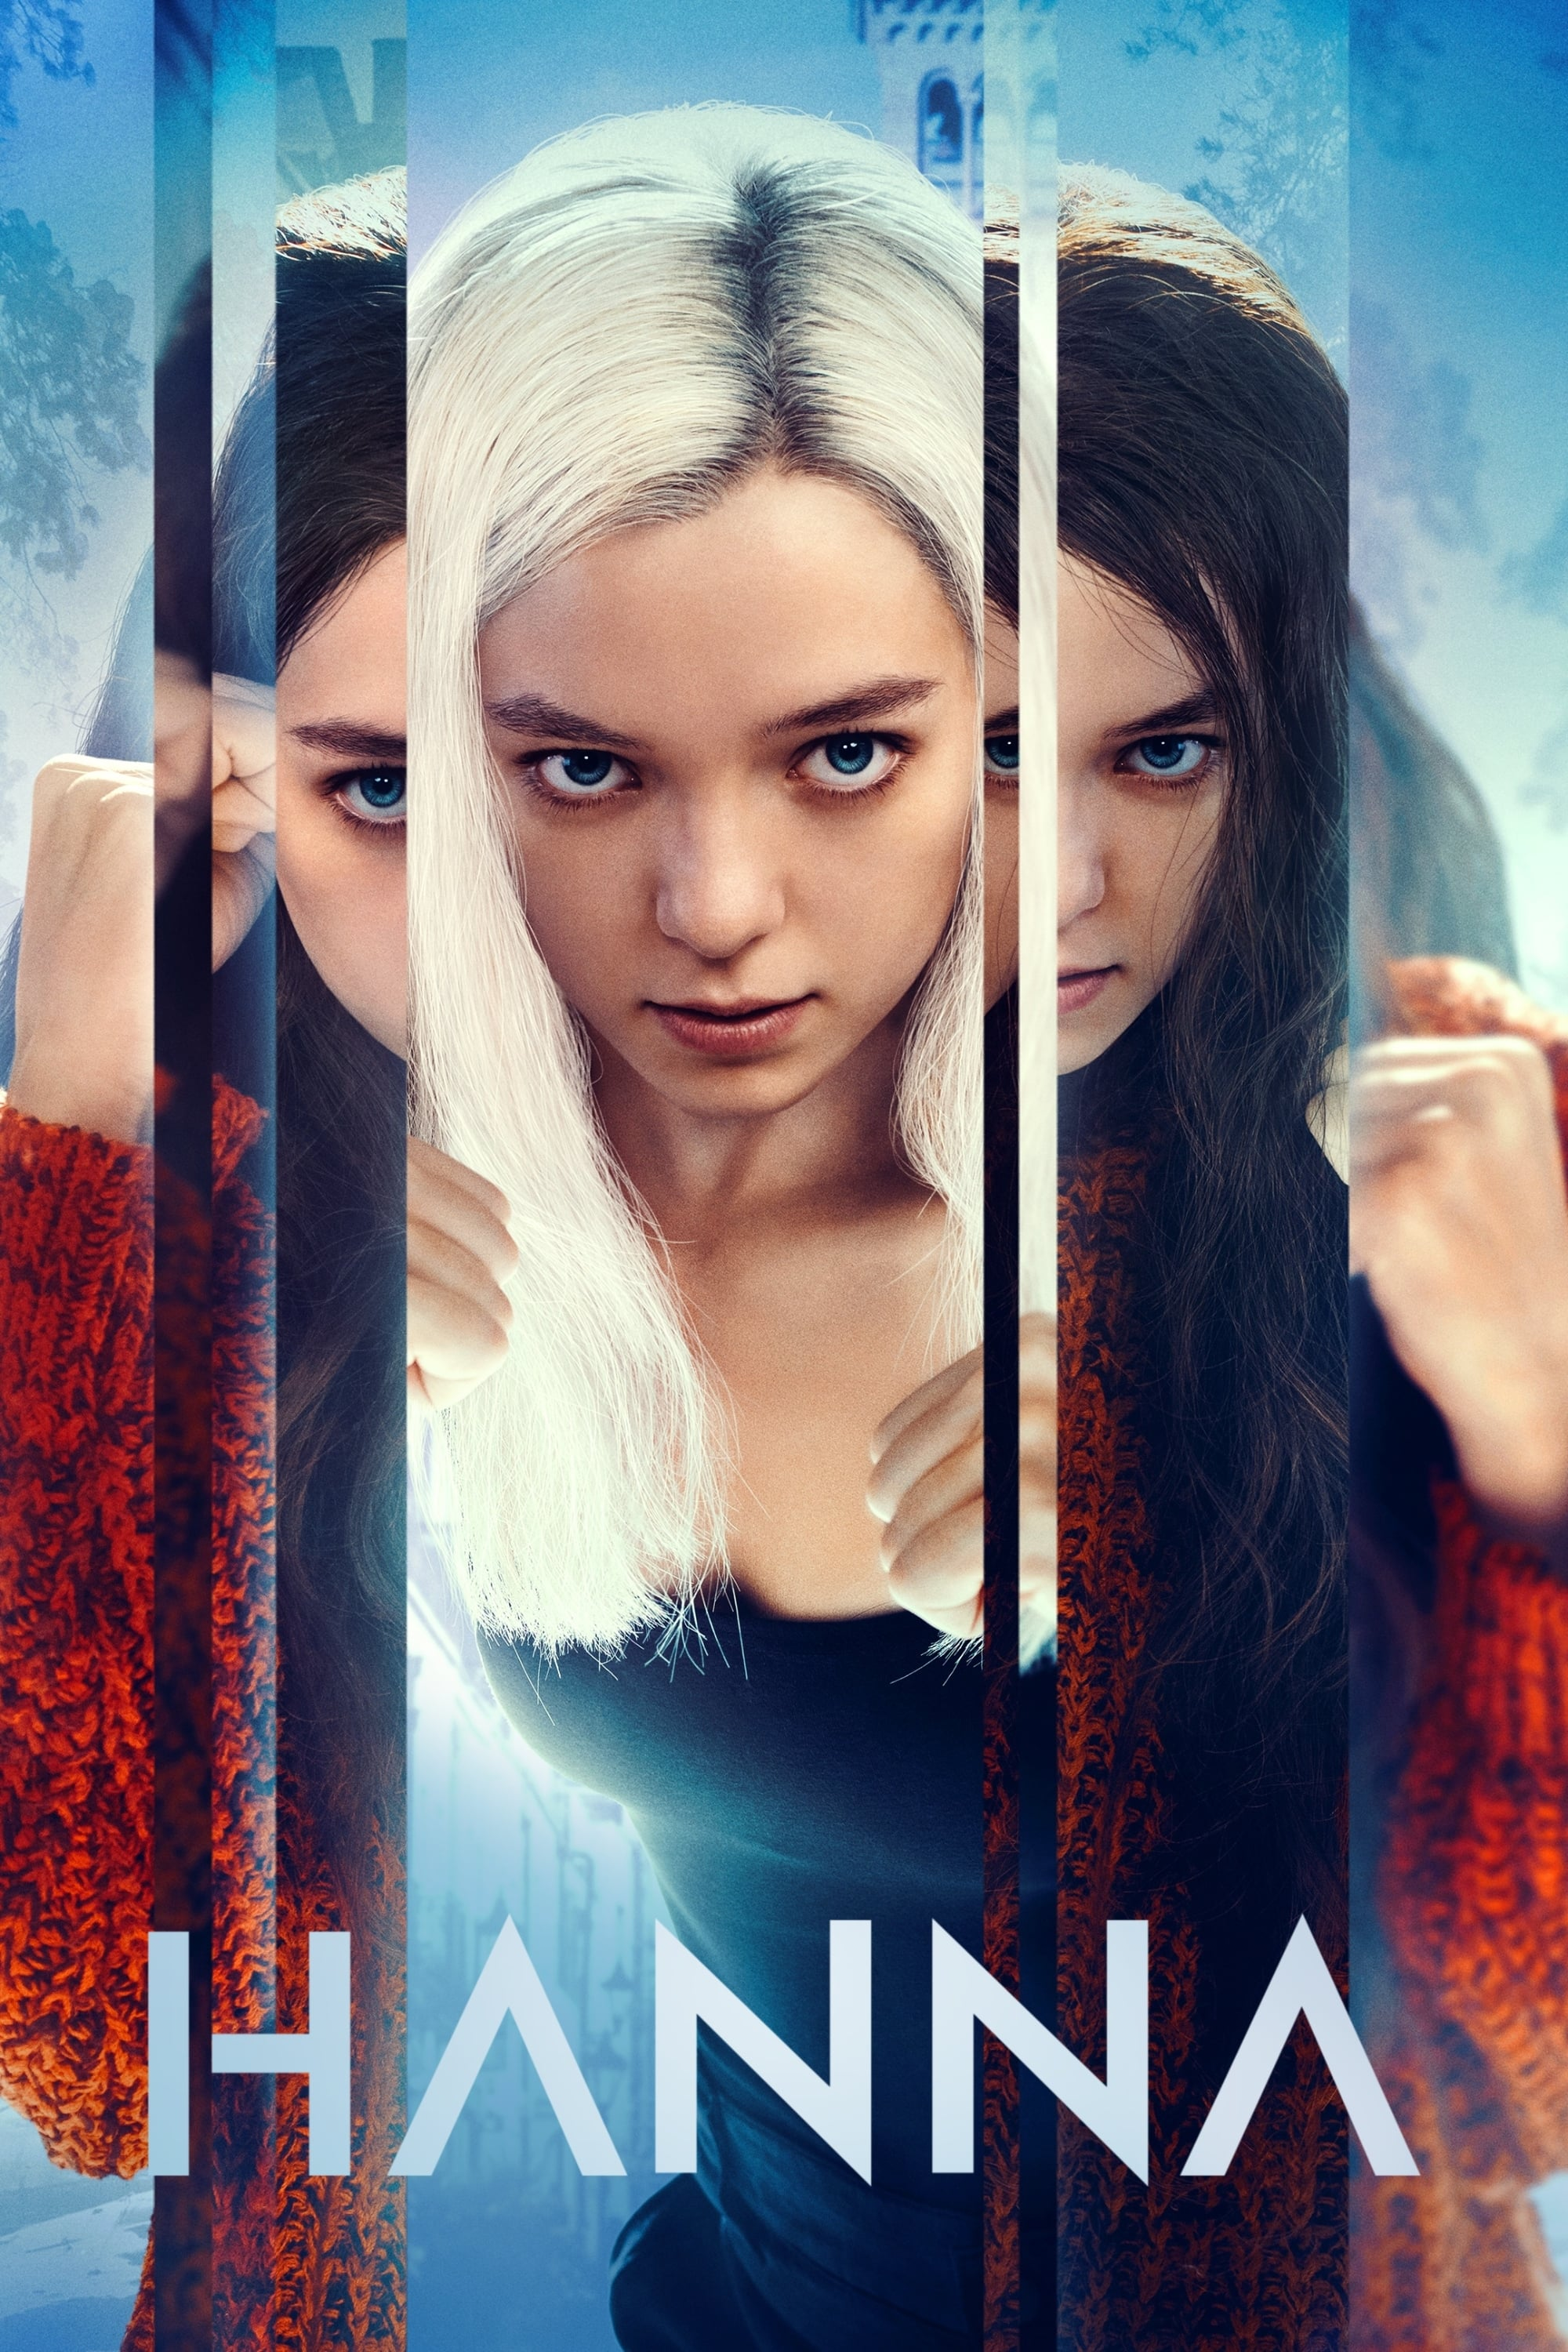 Hanna (2020) Season 2 Complete | x264 AMZN WEB-DL | 1080p | 720p | Download | Amazon Exclusive Series | Watch Online | GDrive | Direct Links